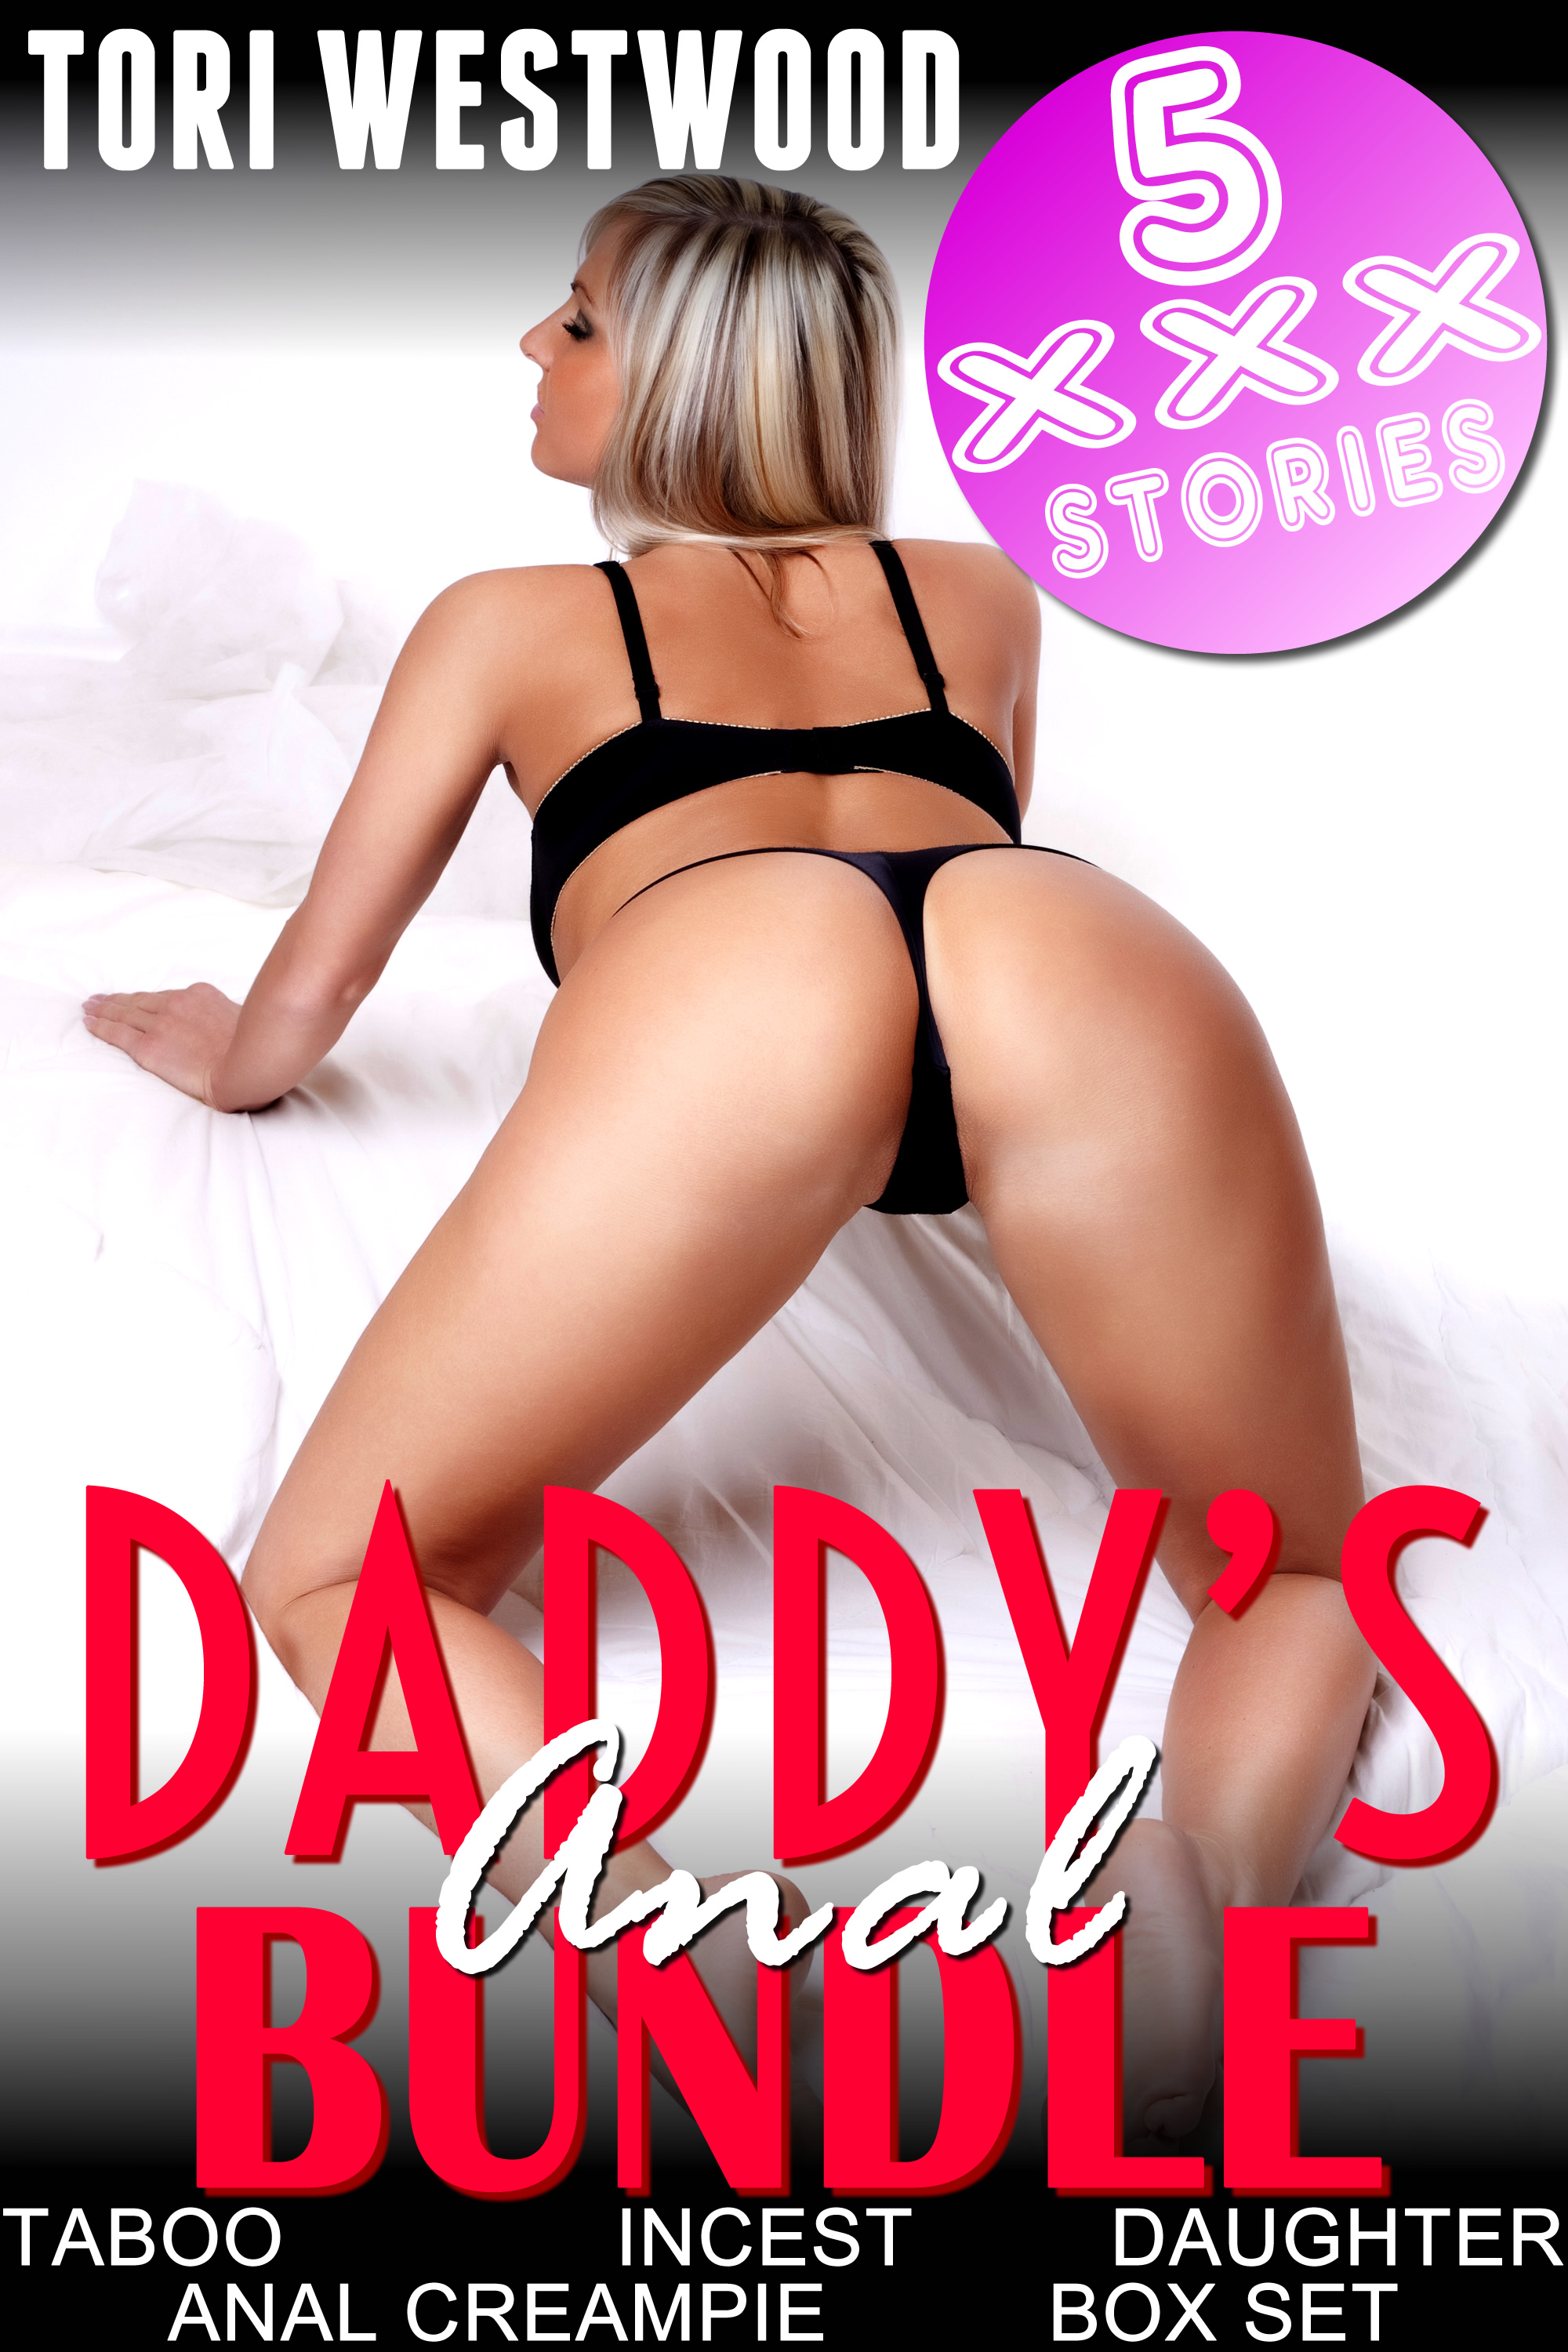 Dadys anal stories